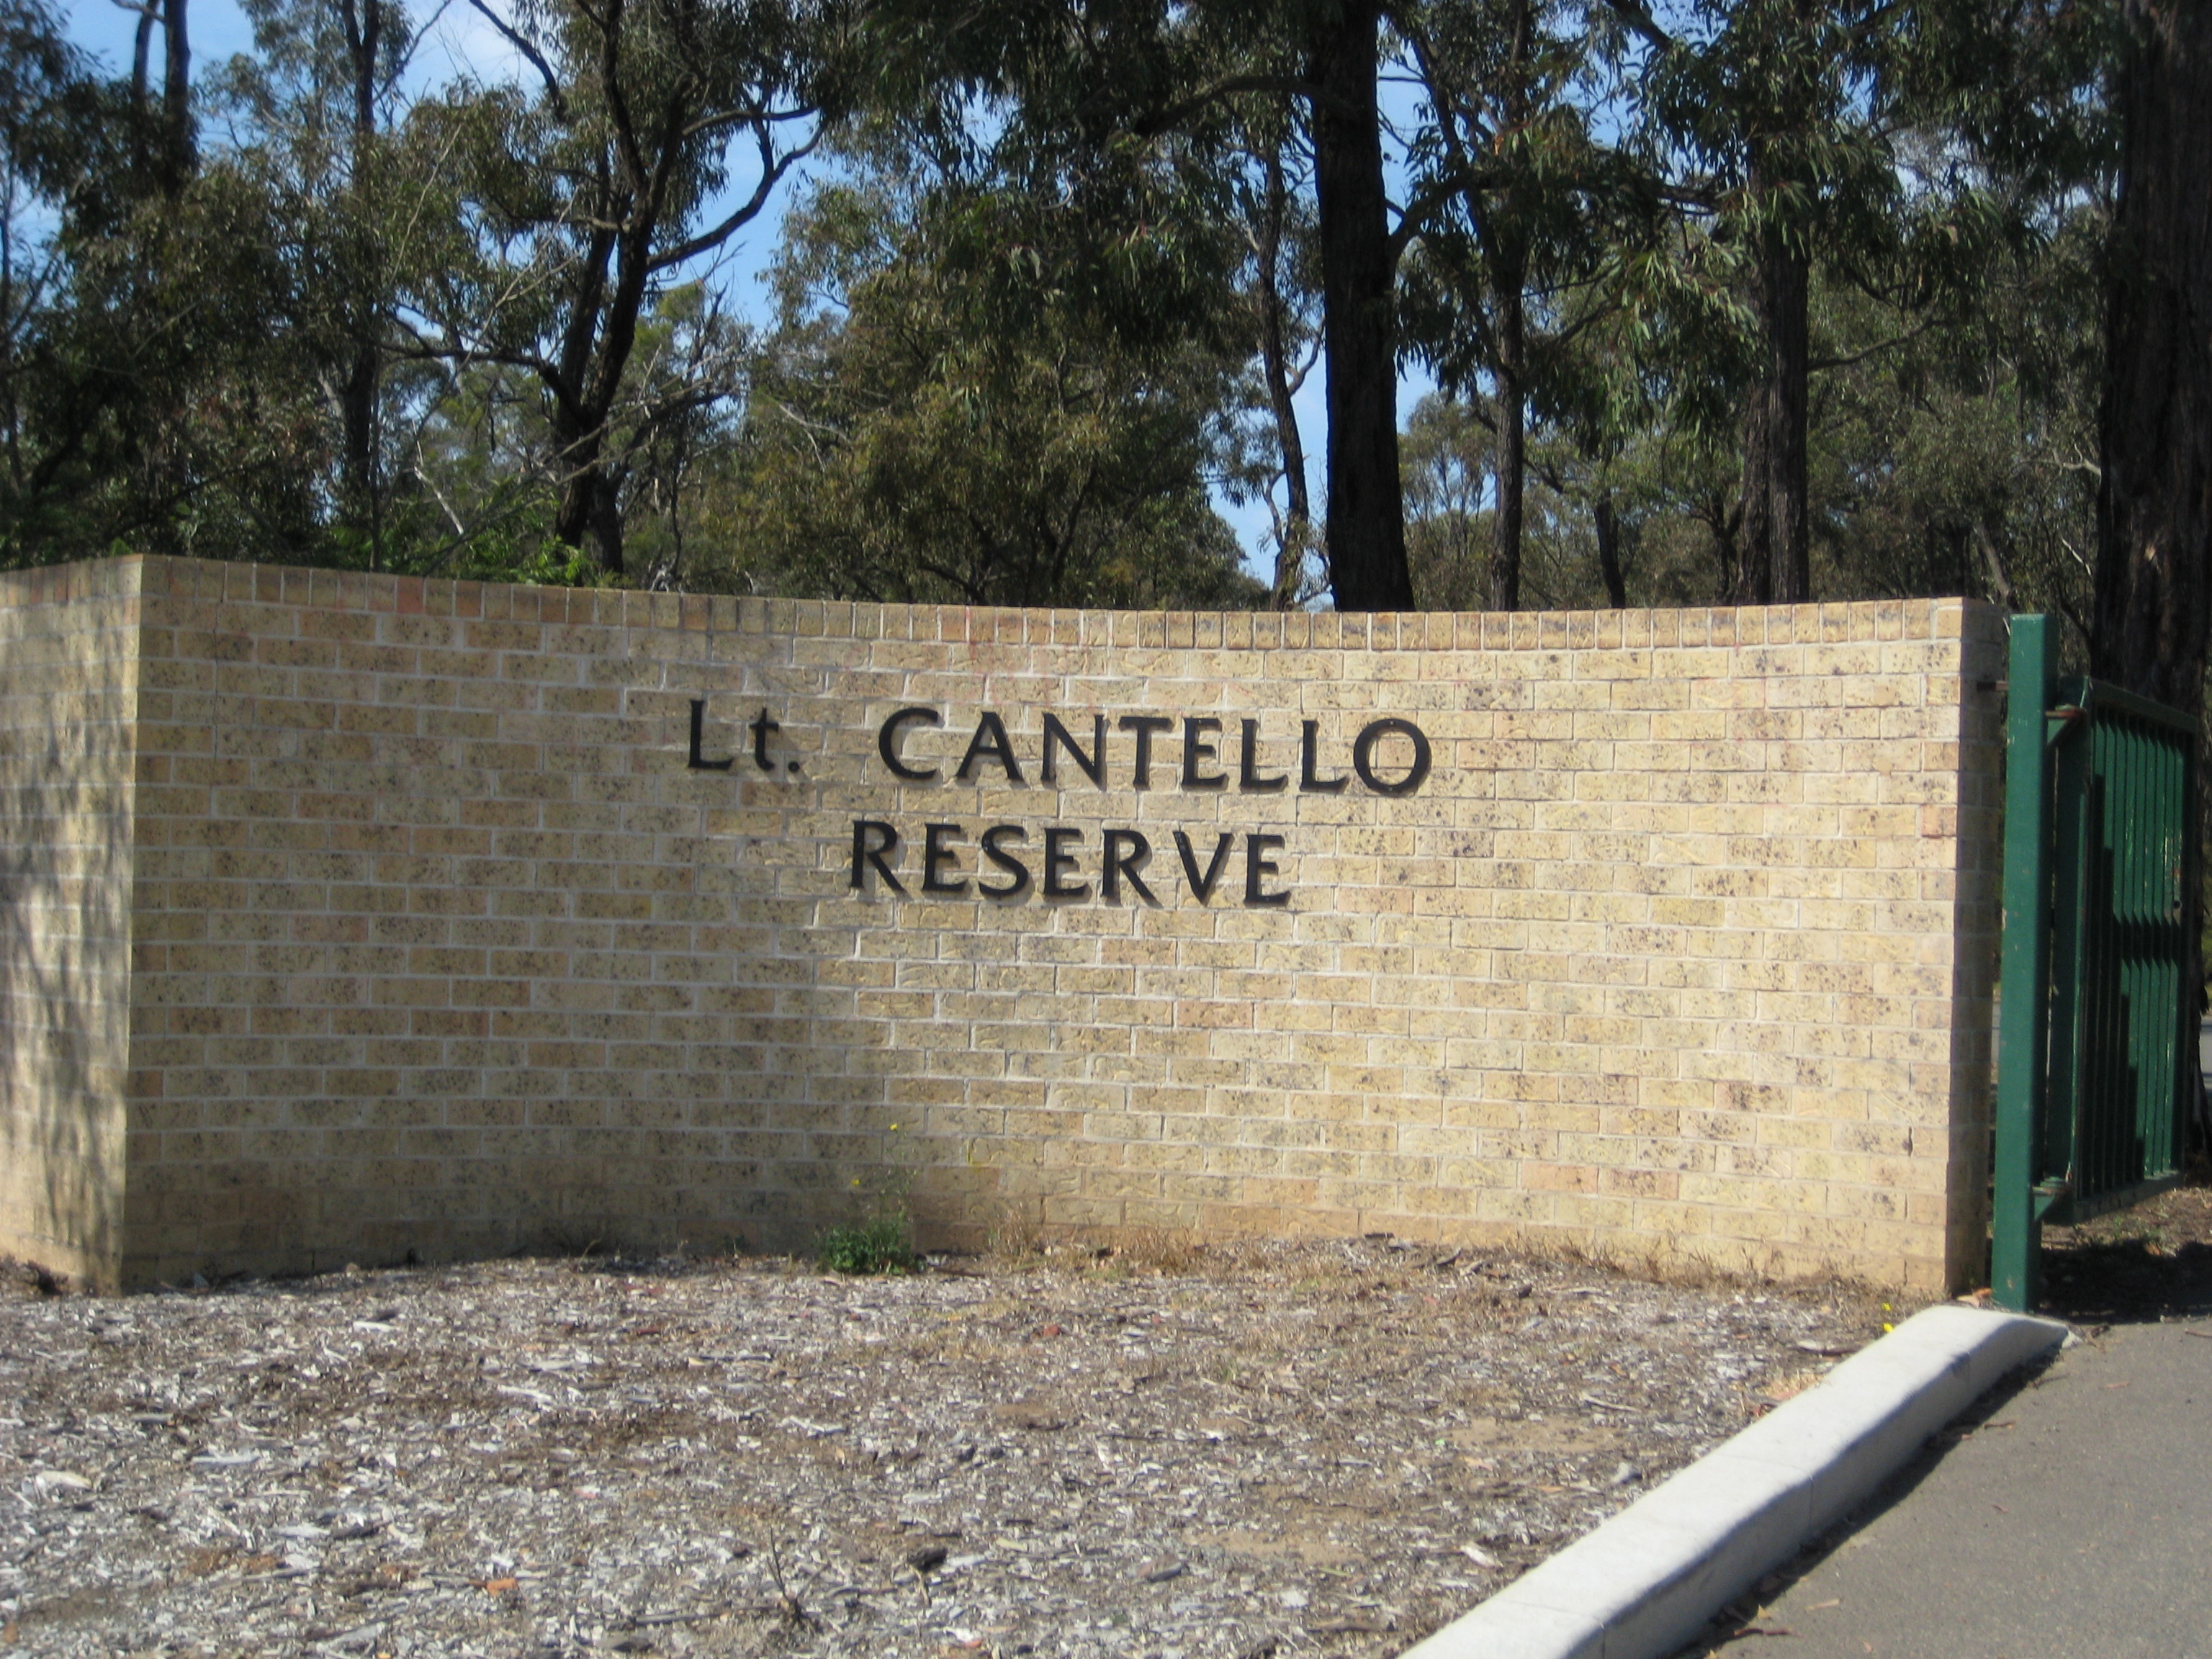 Entrance20to20Lt20Cantello20Reserve